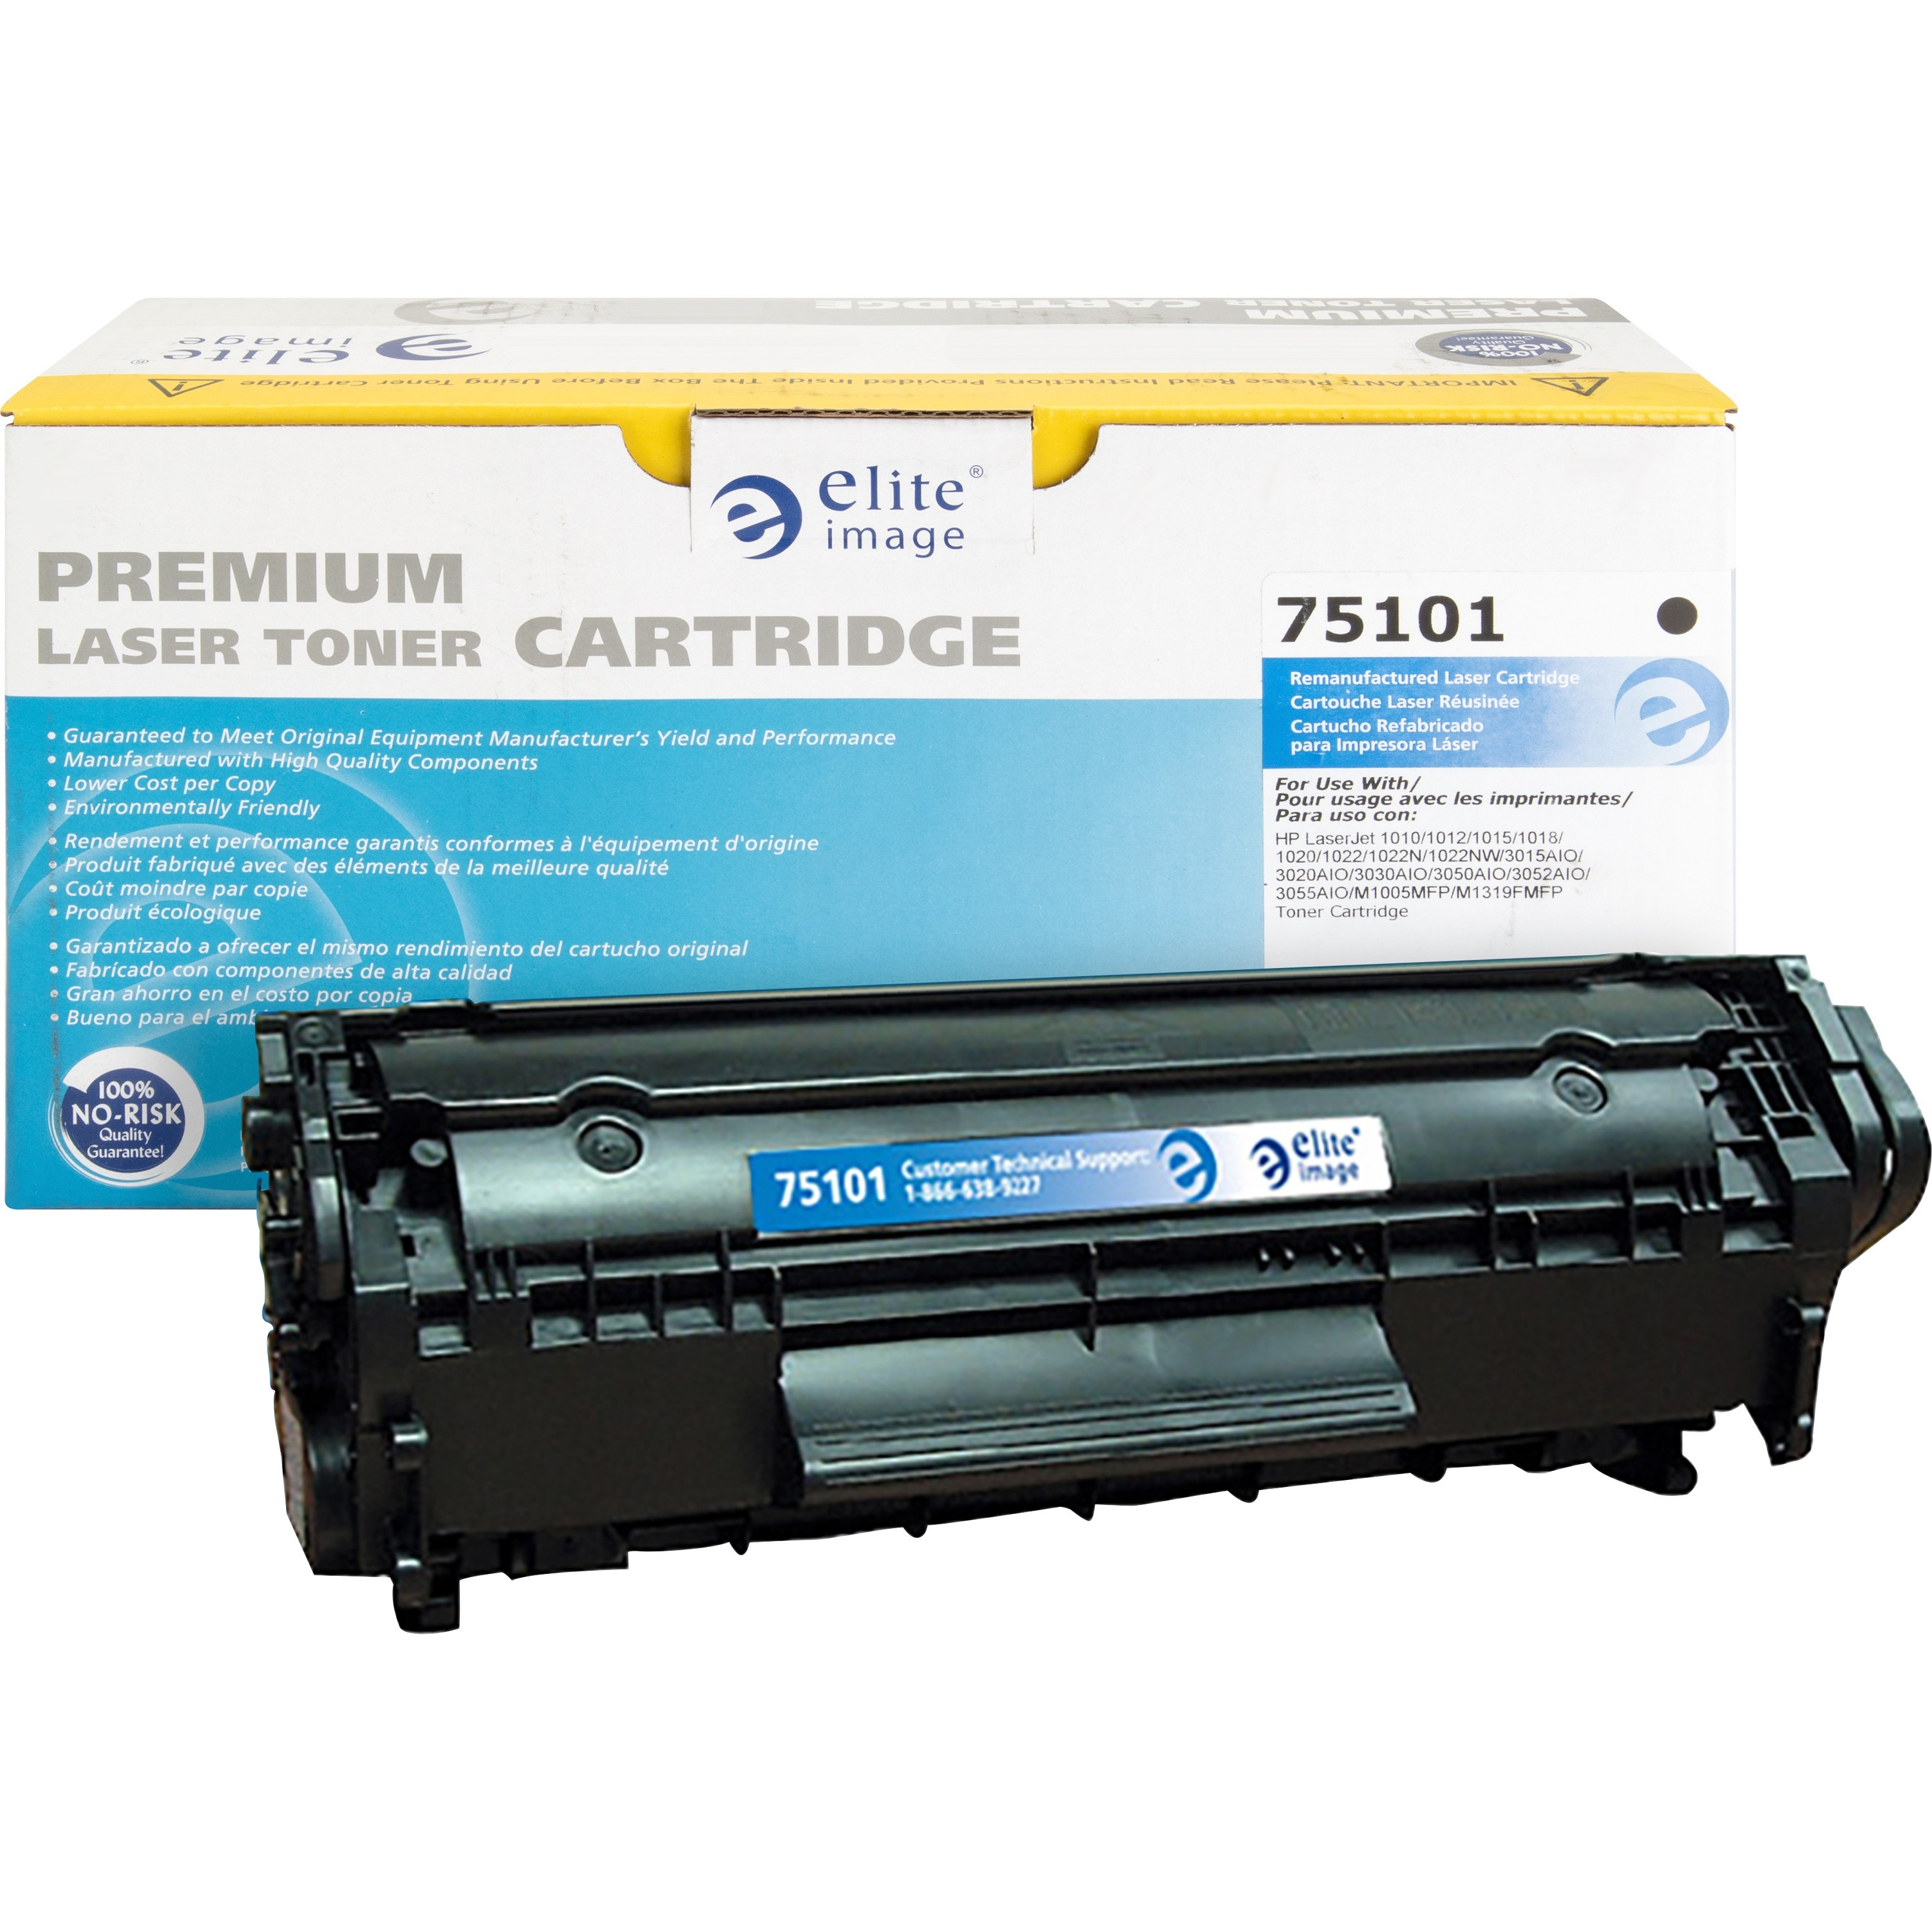 10PK High Yield Q2612A 12A Toner For HP LaserJet 1015 1018 1020 1022 3015 1012